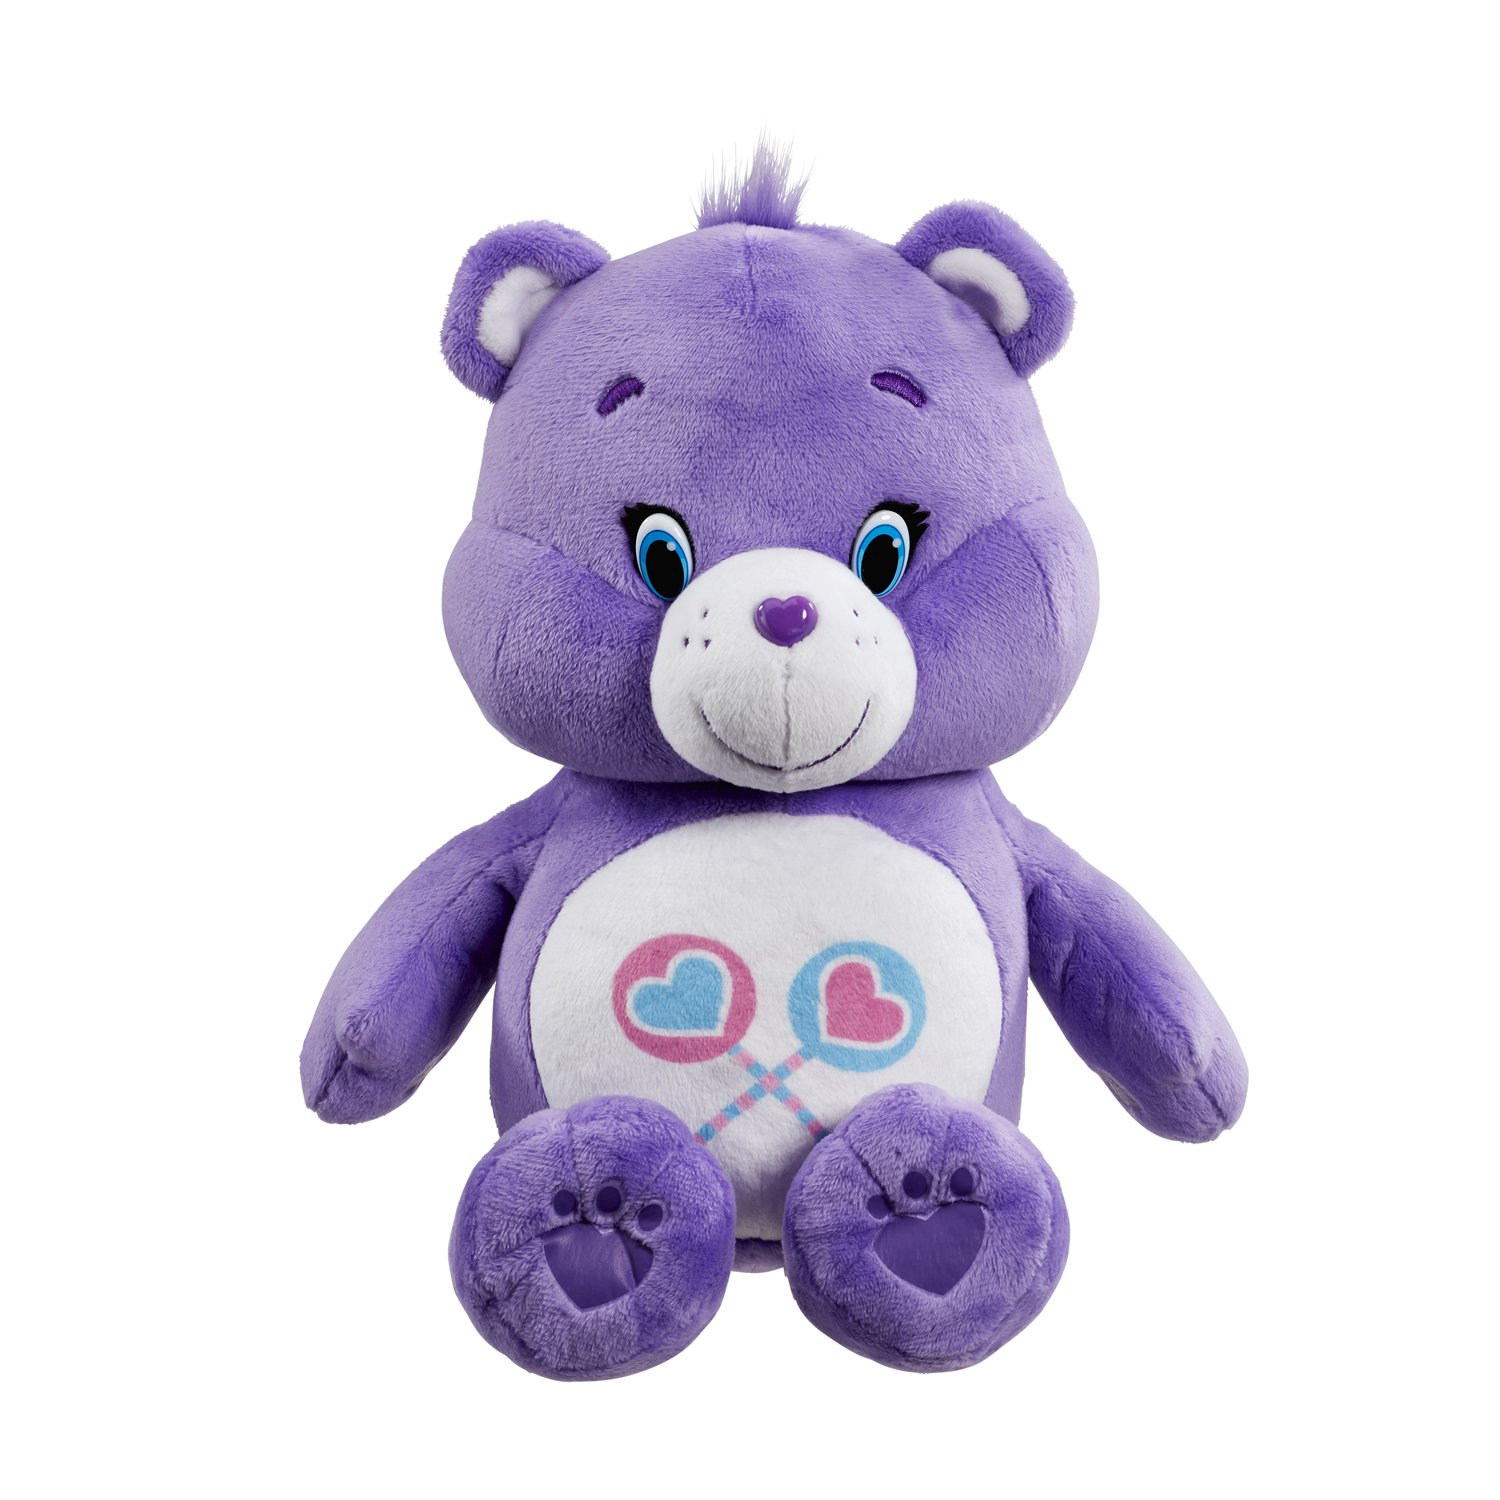 Amazon.com: Bisounours - JP43072.4300 - Peluche Hug - Giggle Tougentille: Toys & Games